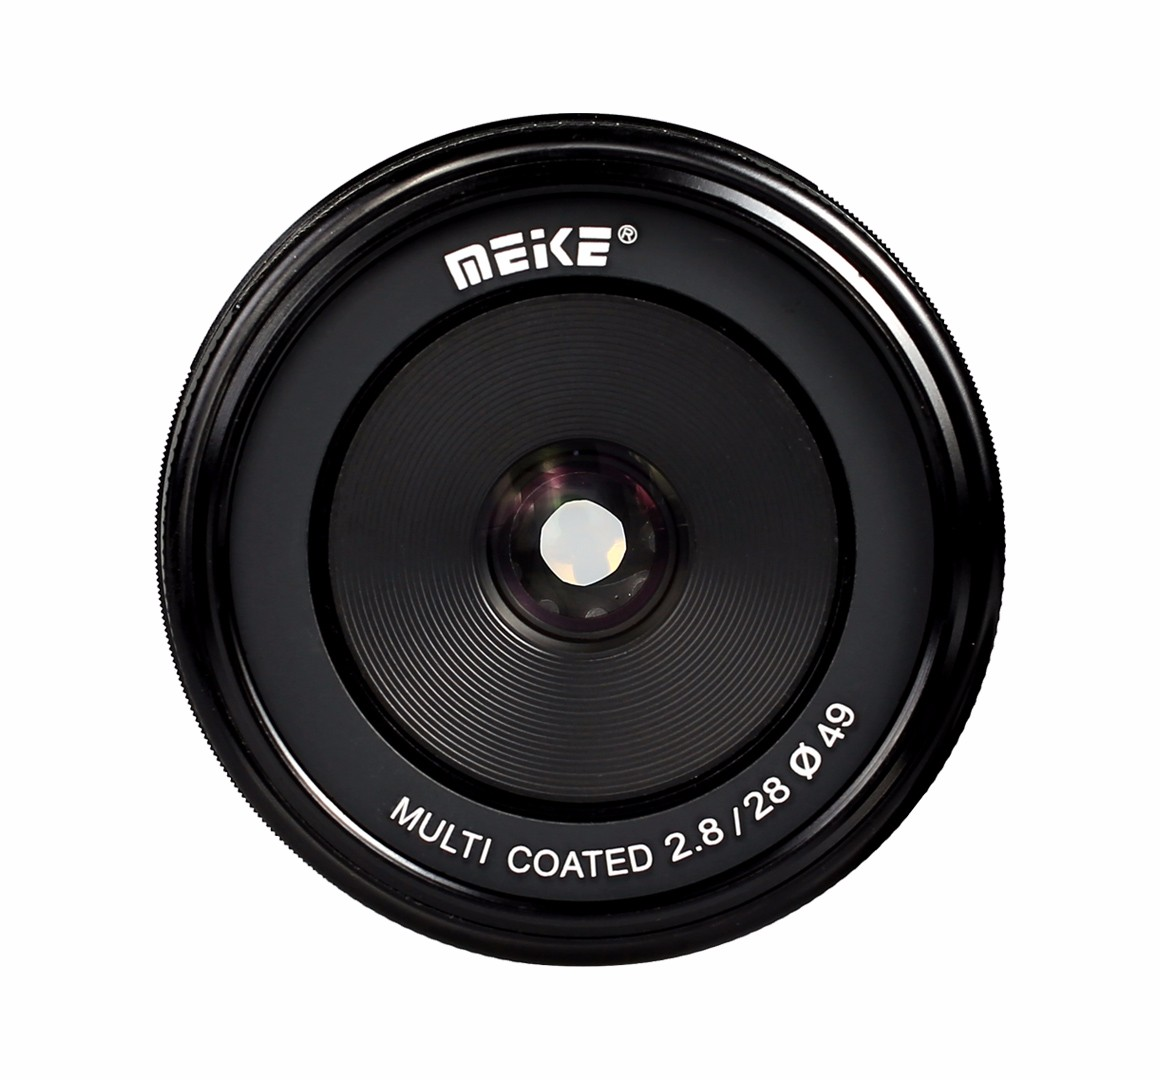 Meike MK-EF-M-28-2.8 28mm f/2.8 fixed manual focus lens for Canon EOS M1 M2 M3